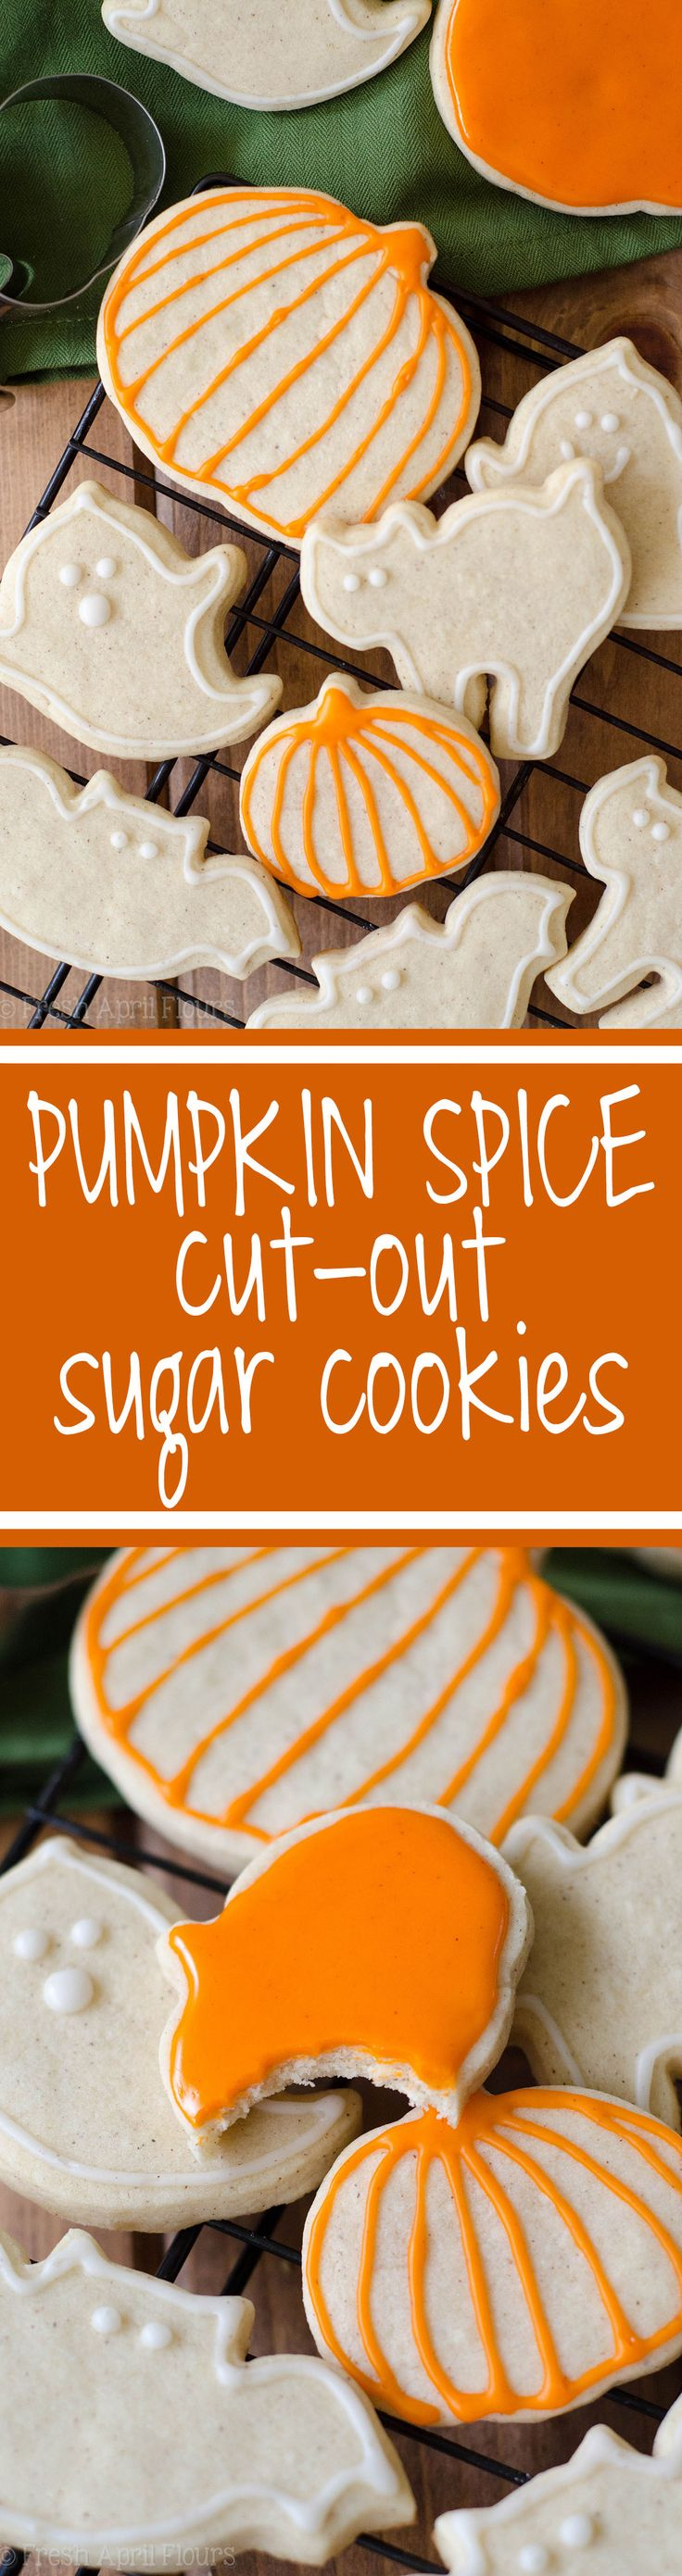 Pumpkin Spice Cut-Out Sugar Cookies: No dough chilling necessary for these spiced, soft cut-out sugar cookies that are perfect for decorating with icing and sprinkles. Crisp edges, soft centers, and completely customizable in shape! via @frshaprilflours